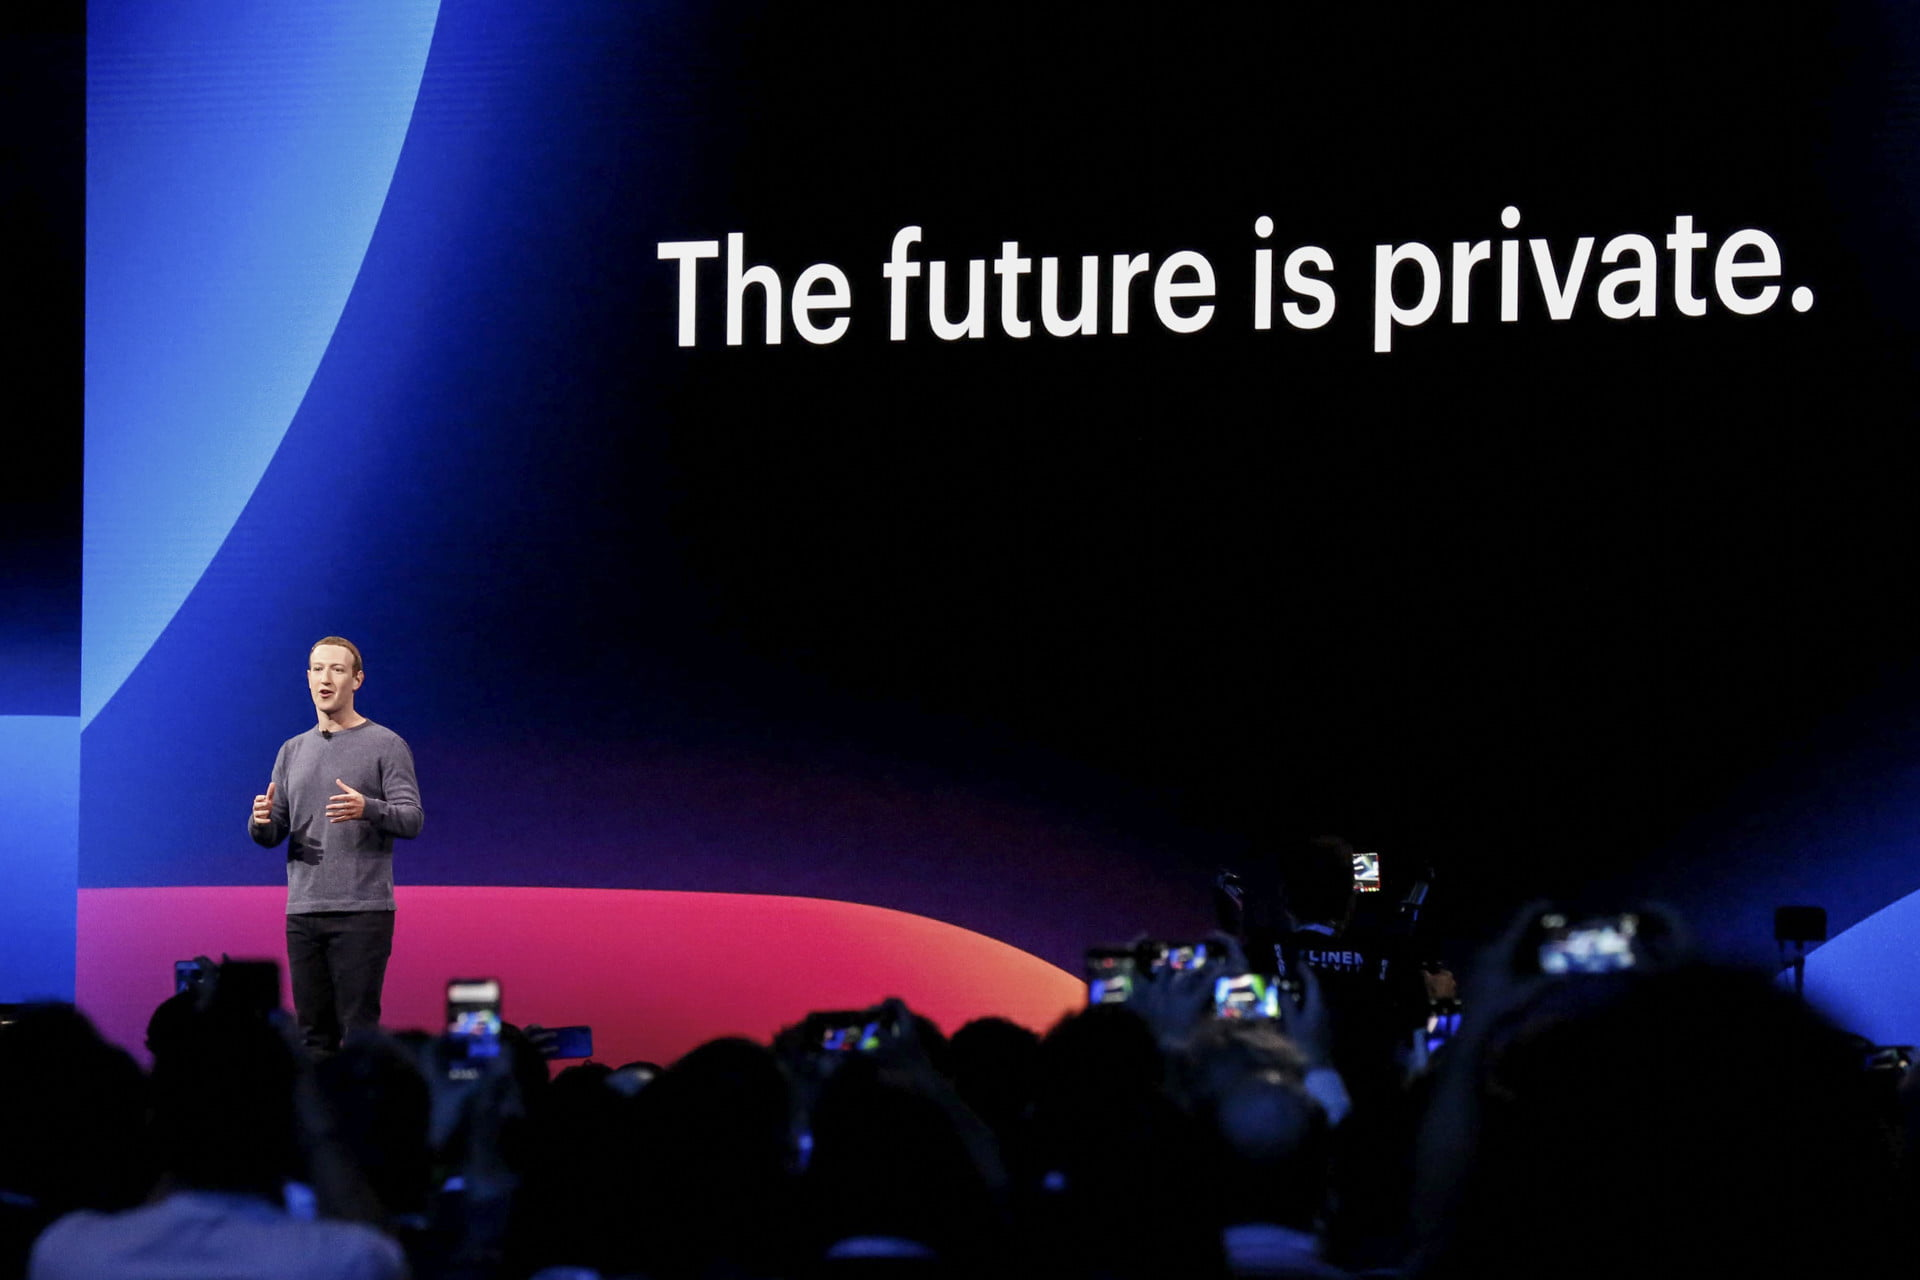 facebook_future_private